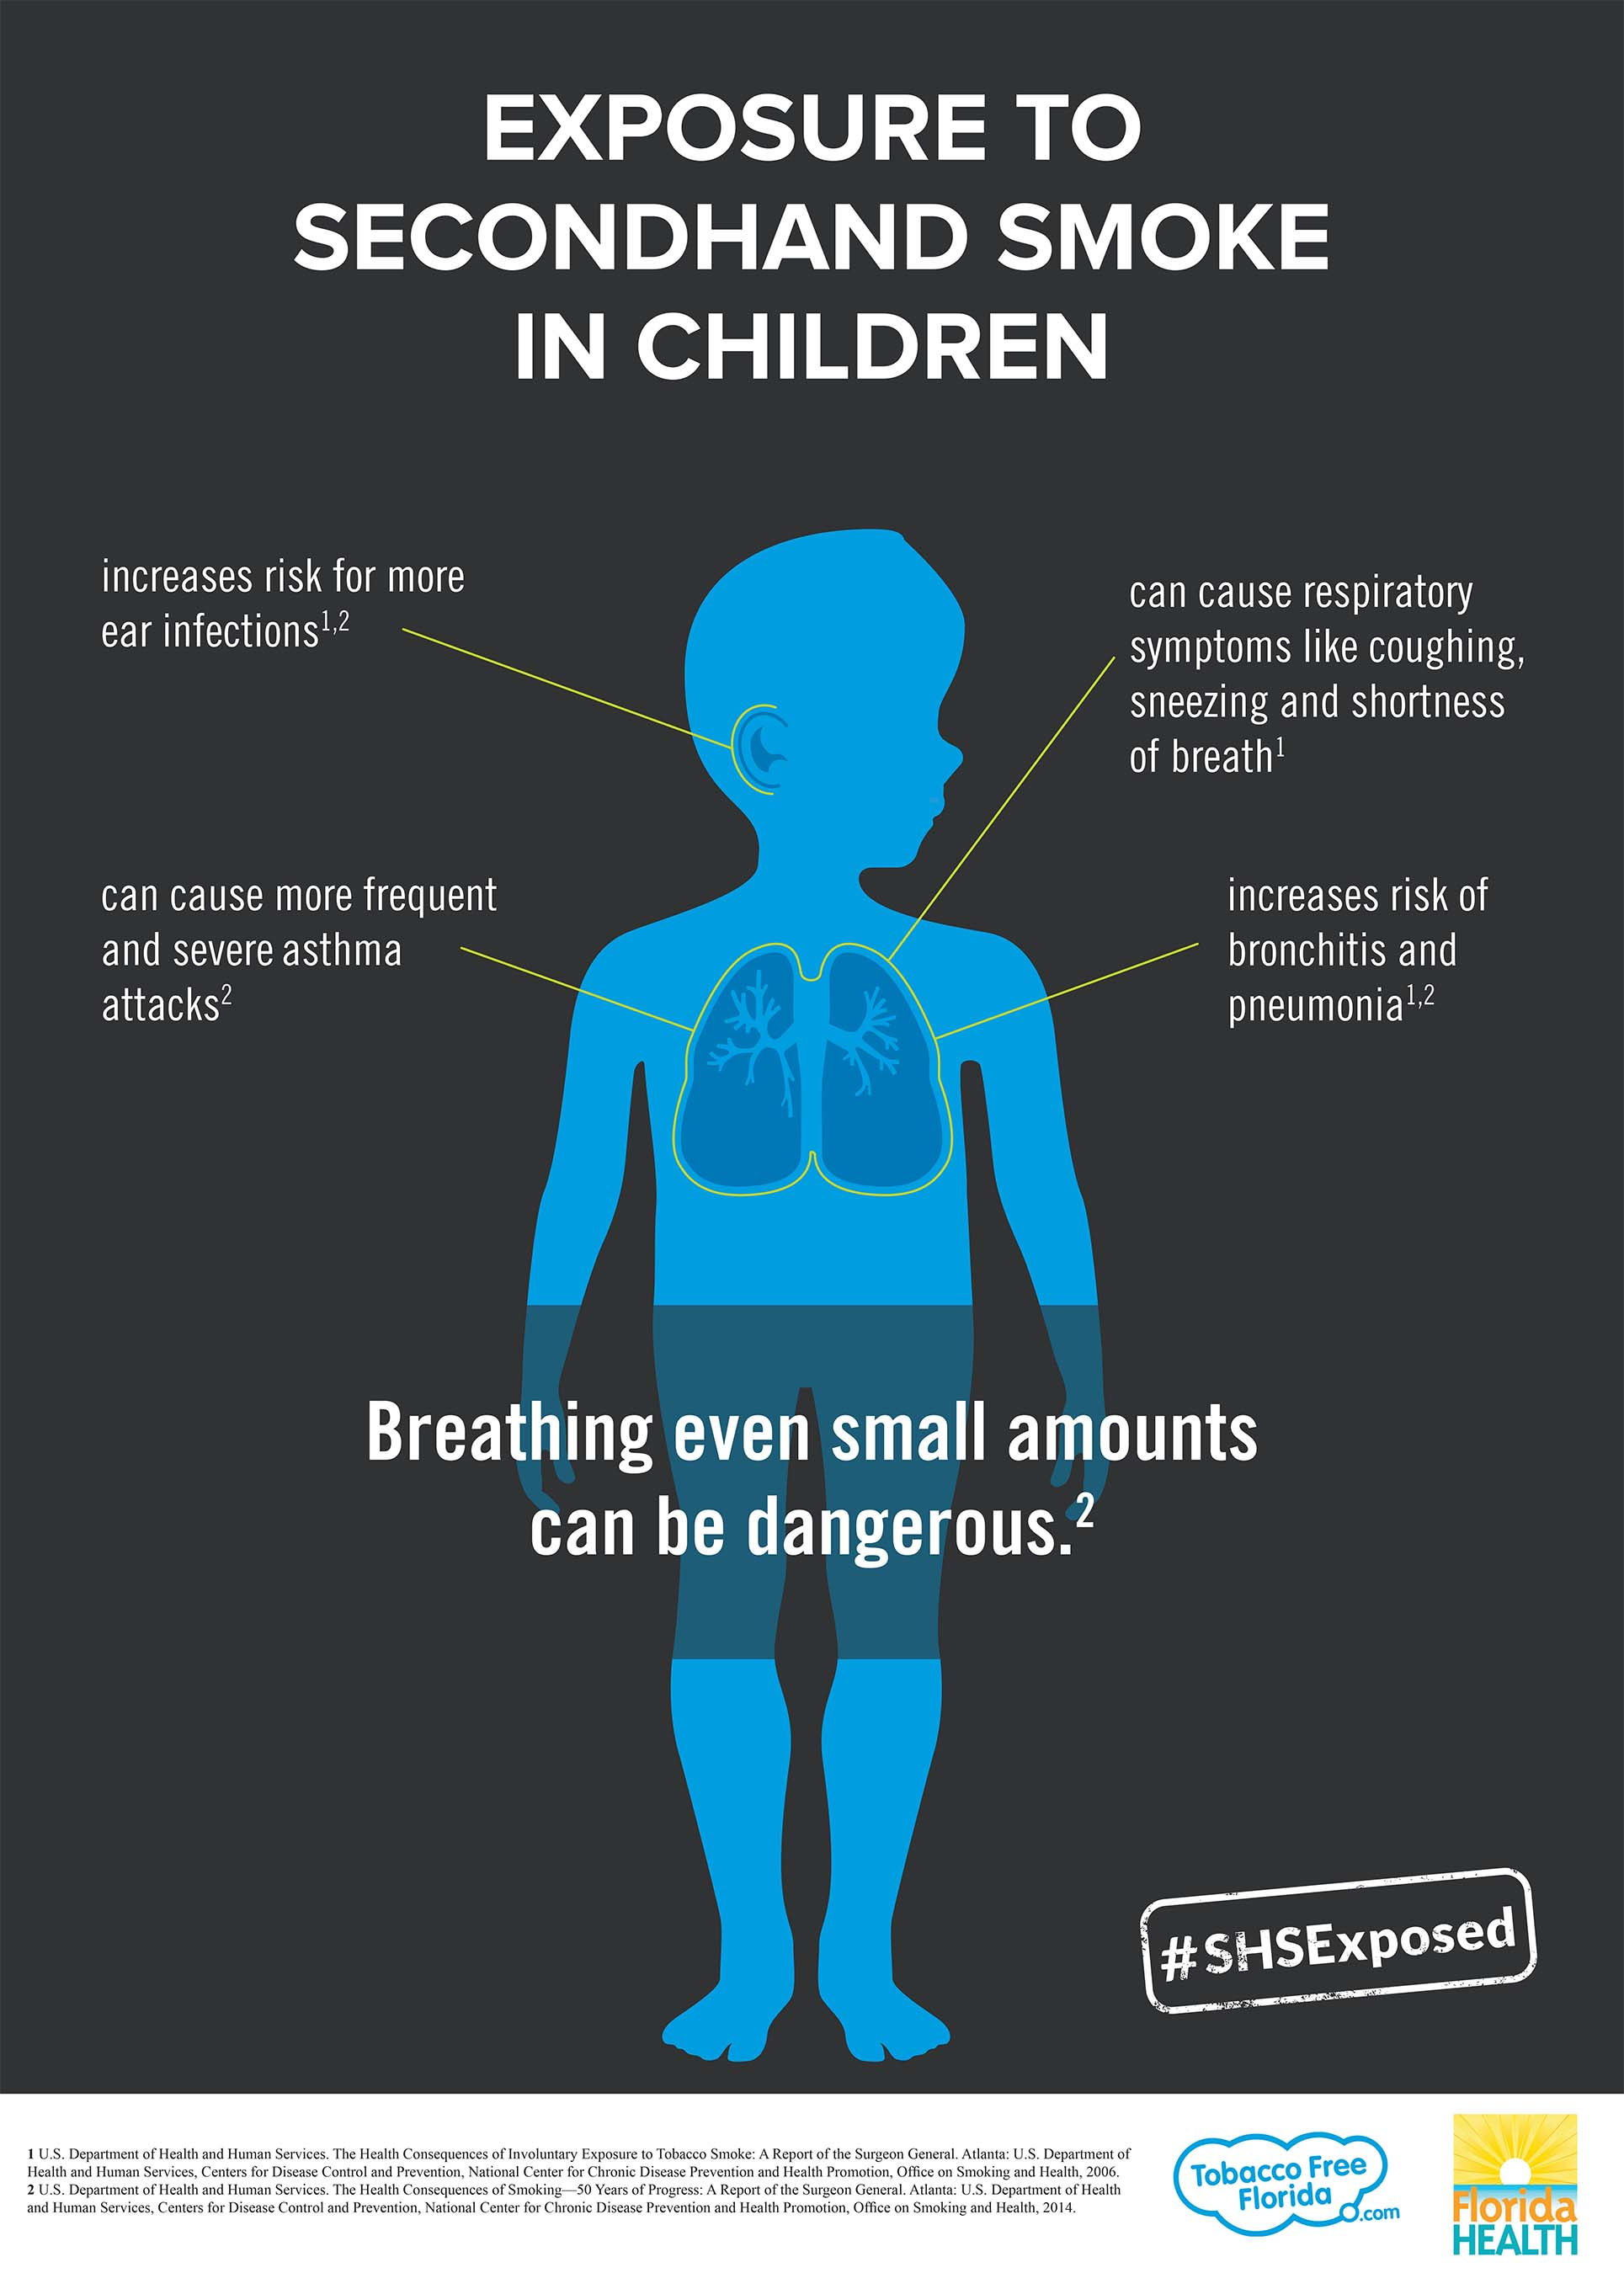 Tobacco Free Florida Exposes The Risks Of Secondhand Smoke ...